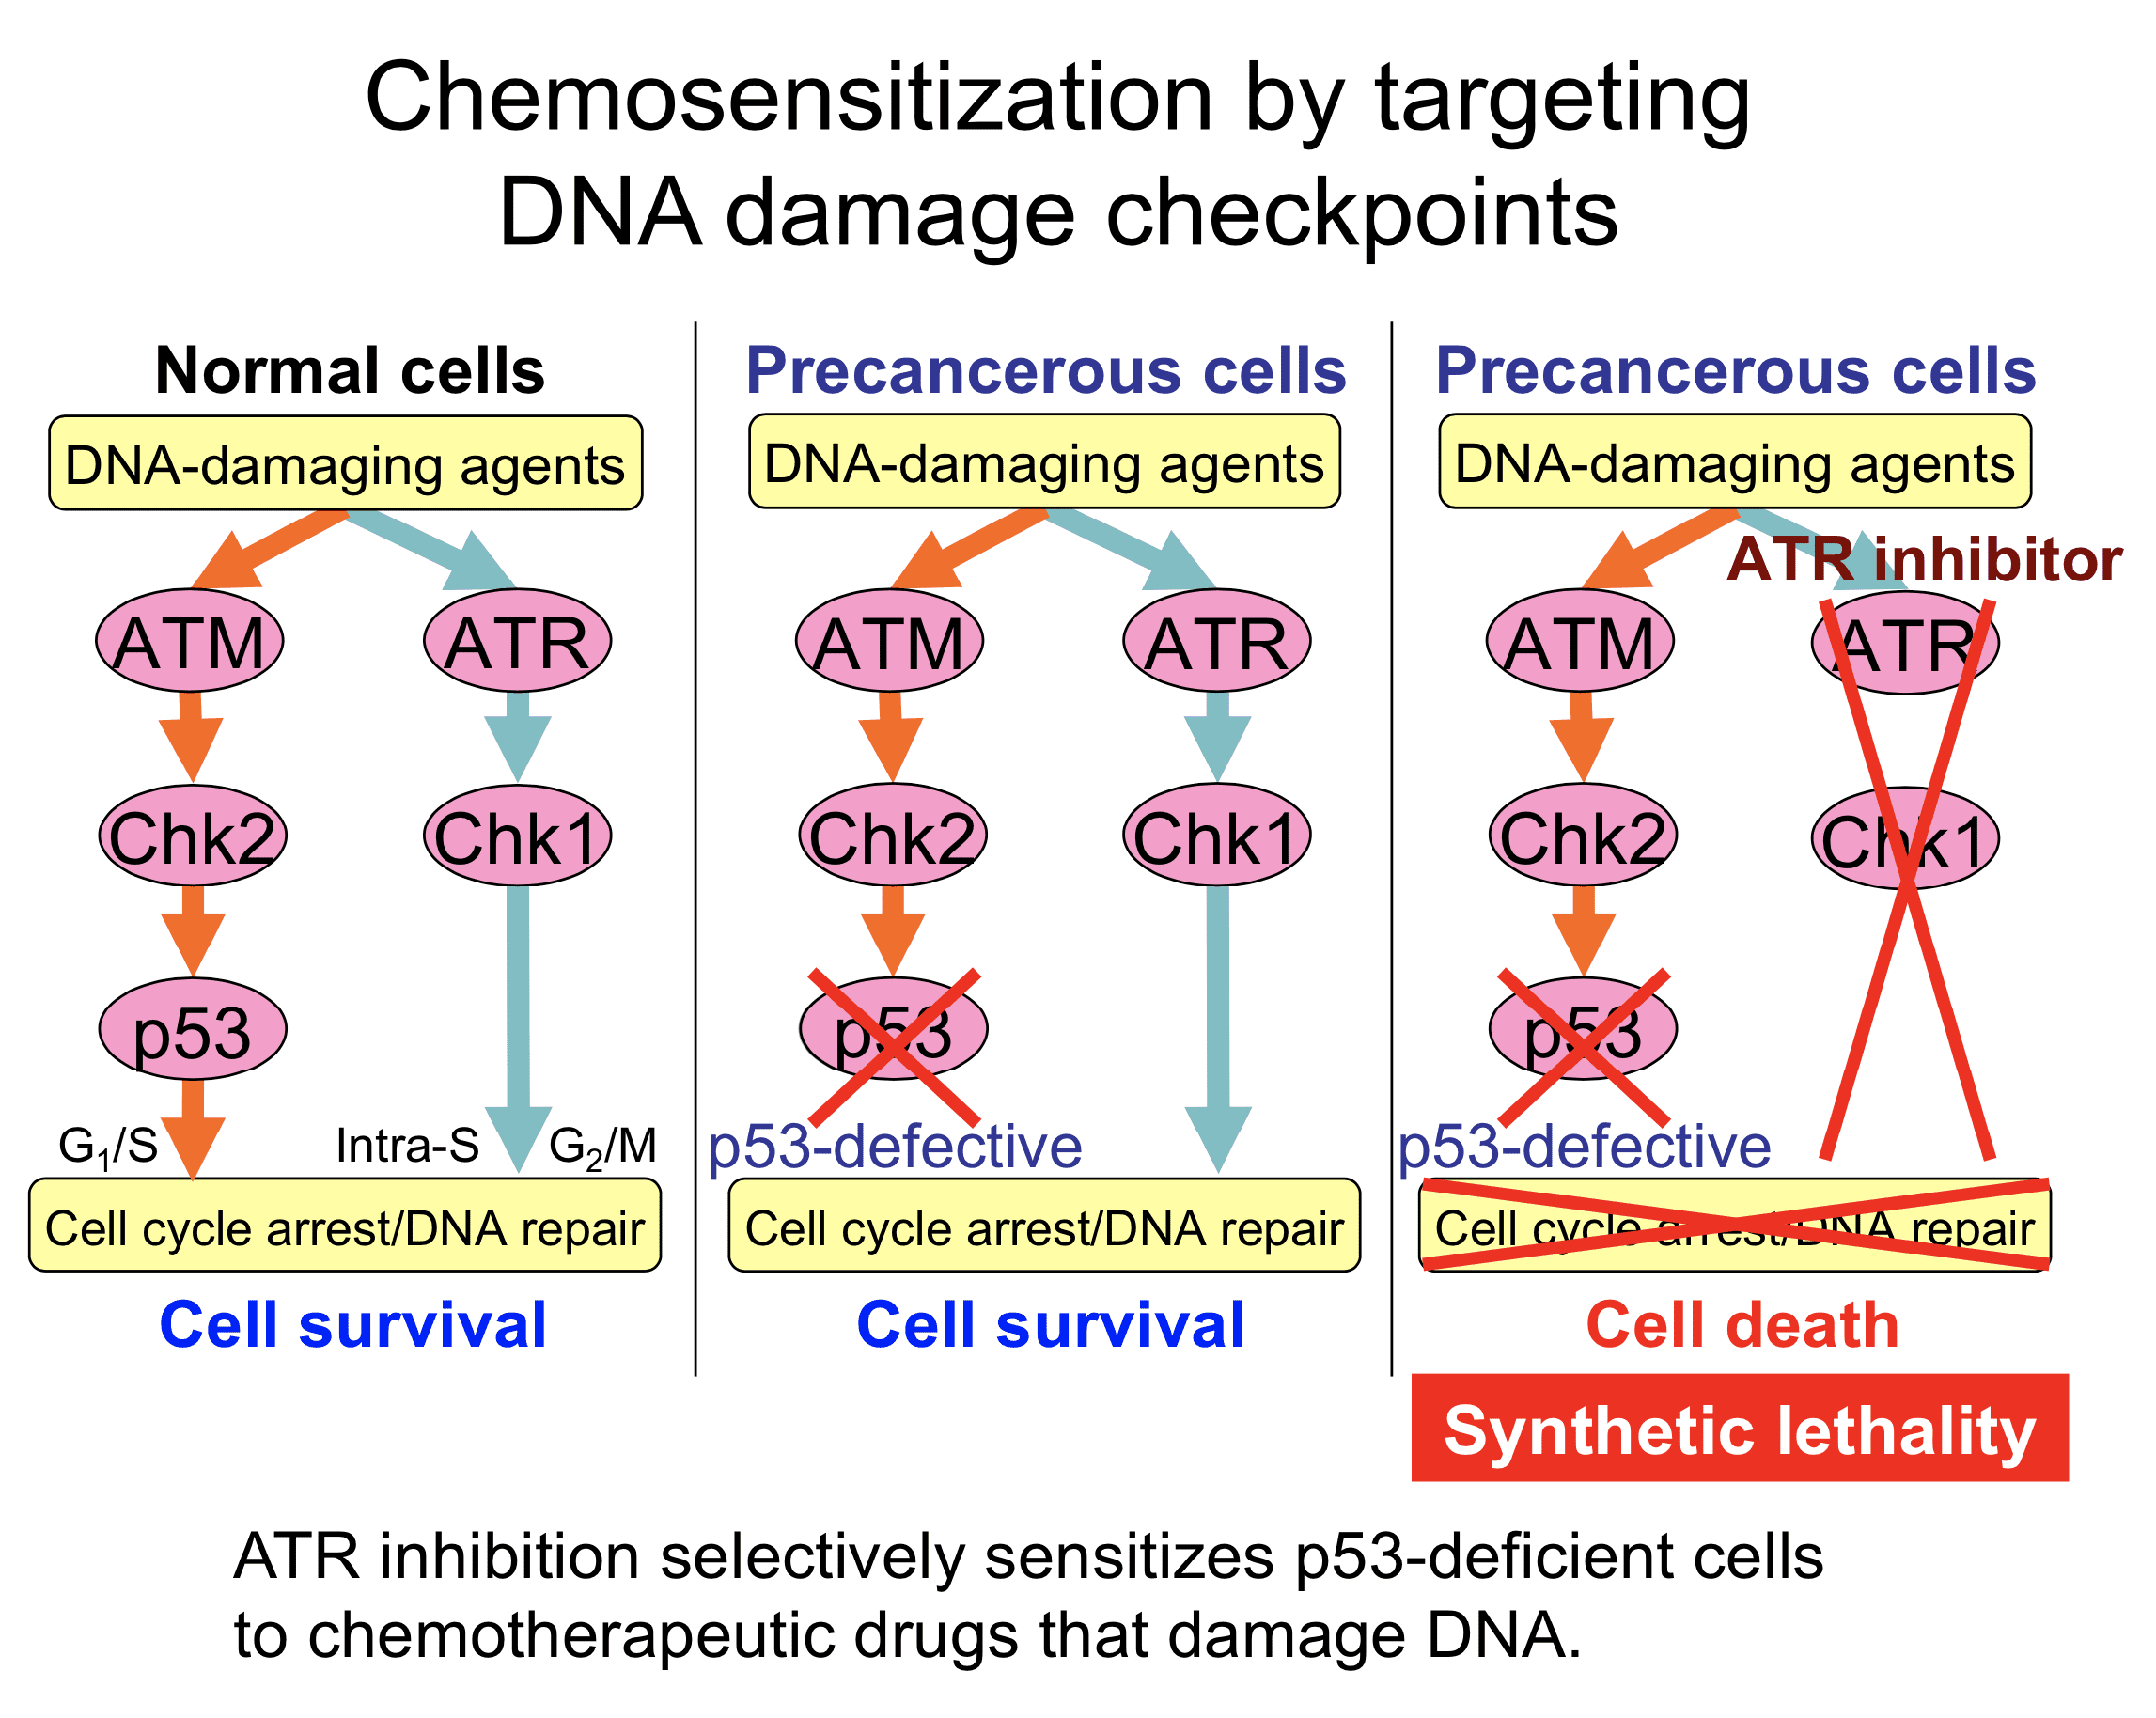 KawasumiLab-Research-02-ATRInhibitors-01-ChemosensitizationByATRInhibition